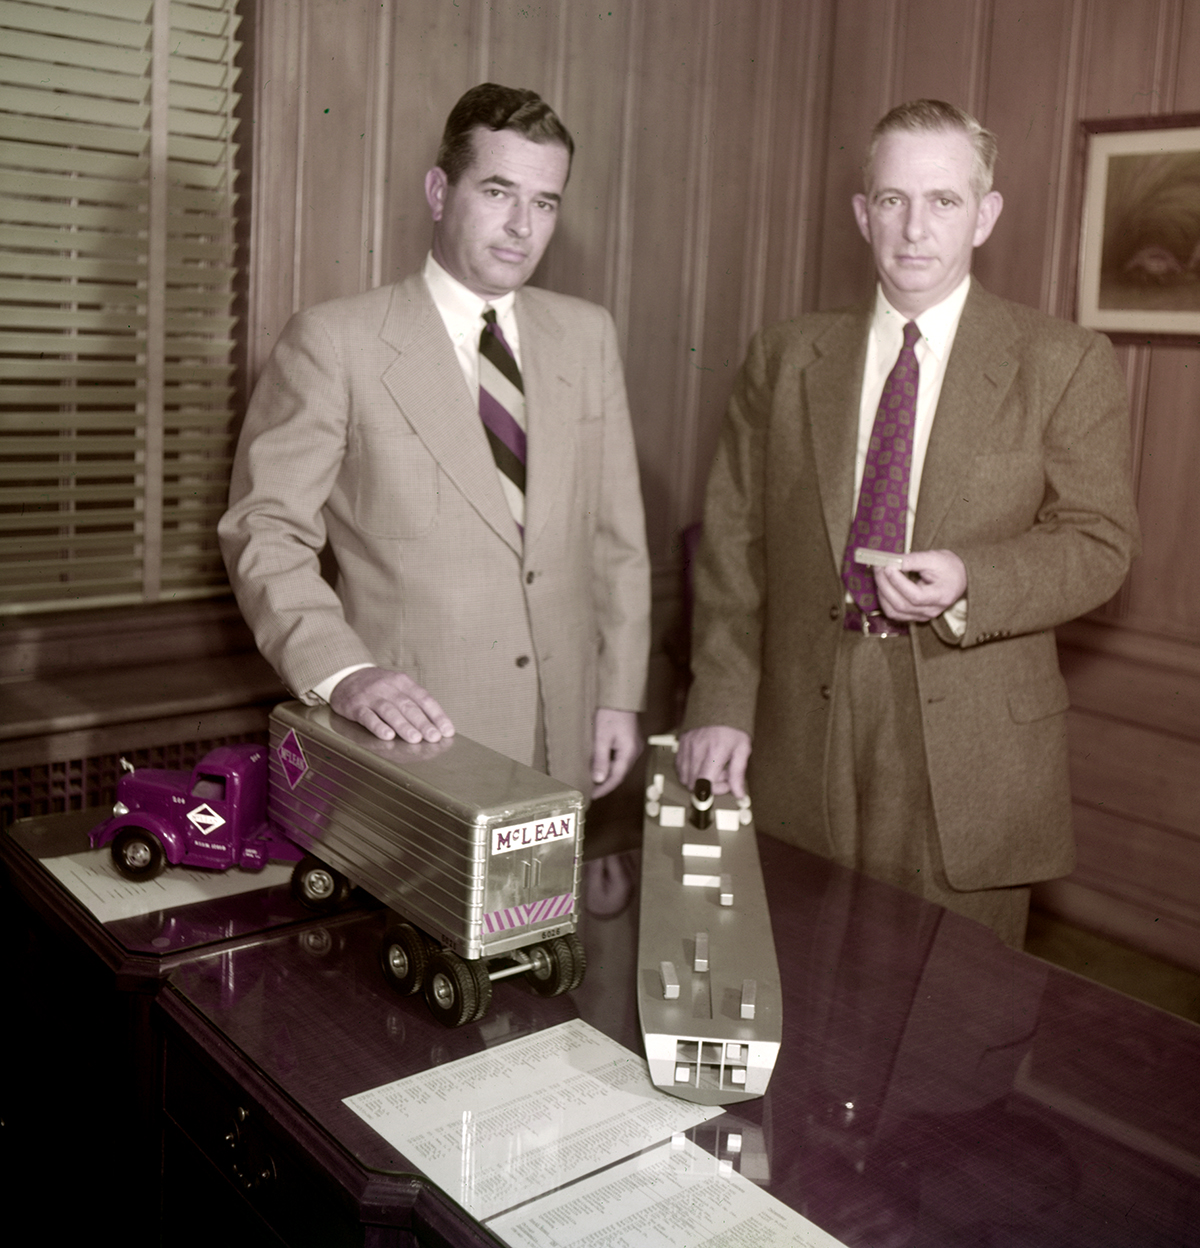 Jim and Malcom McLean demonstrate their shipping plans, Winston-Salem, North Carolina, photo Frank Jones, 1954. Reproduced courtesy of Forsyth County Public Library Photograph Collection, North Carolina, USA.